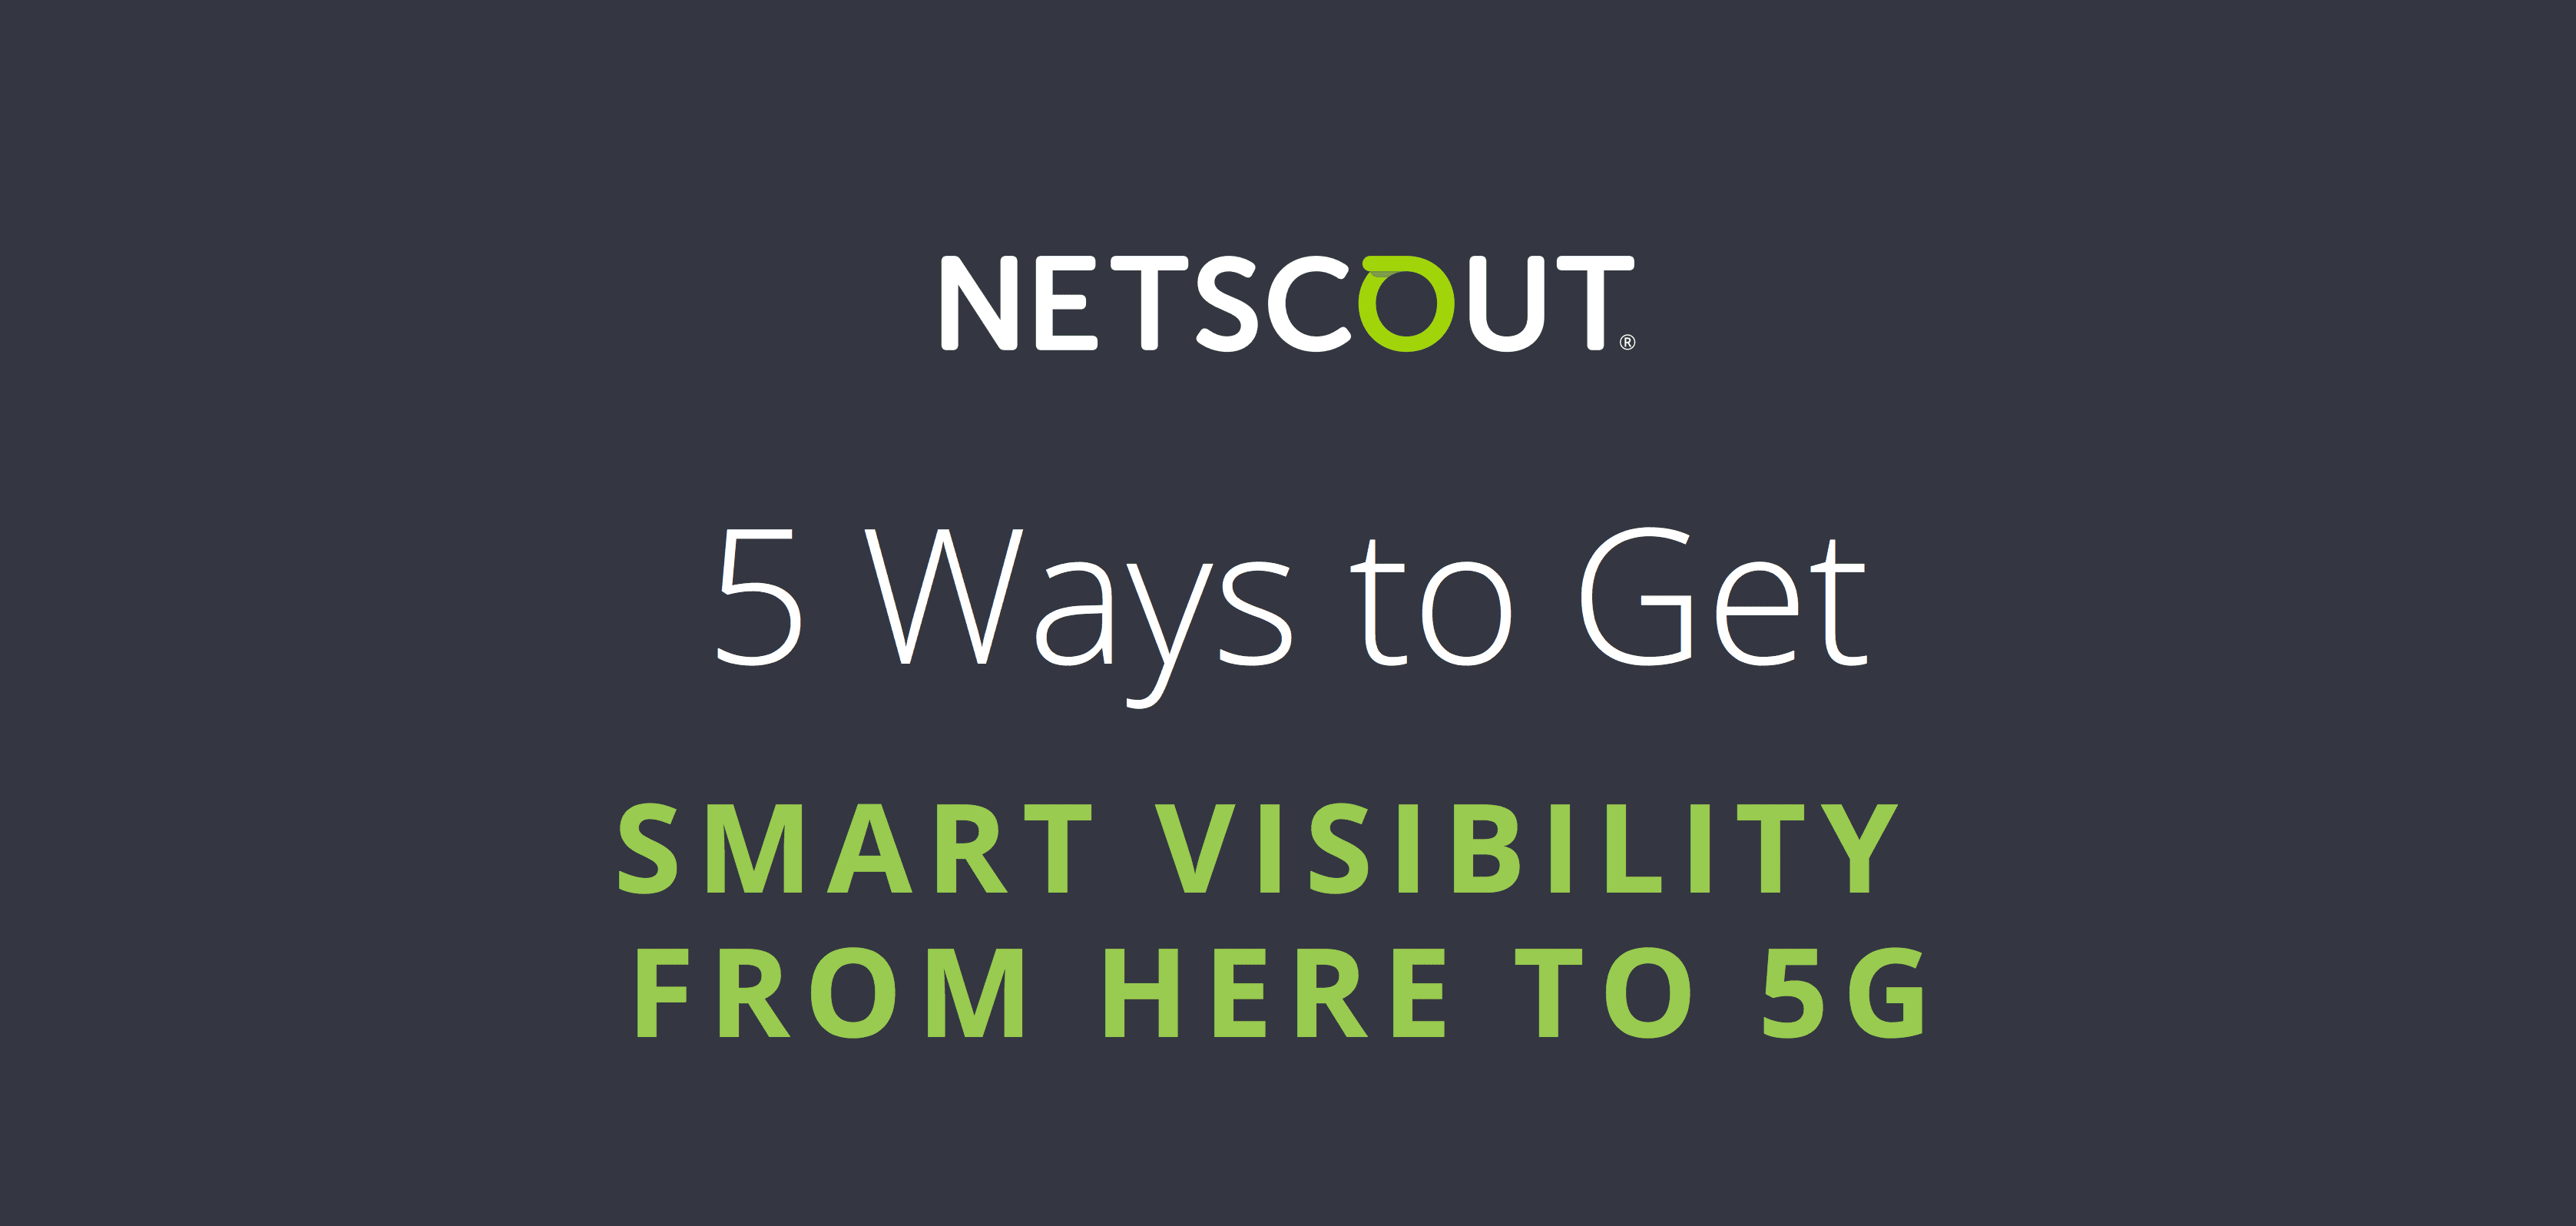 Netscout - 5 Ways to Get Smart Visibility from Here to 5G